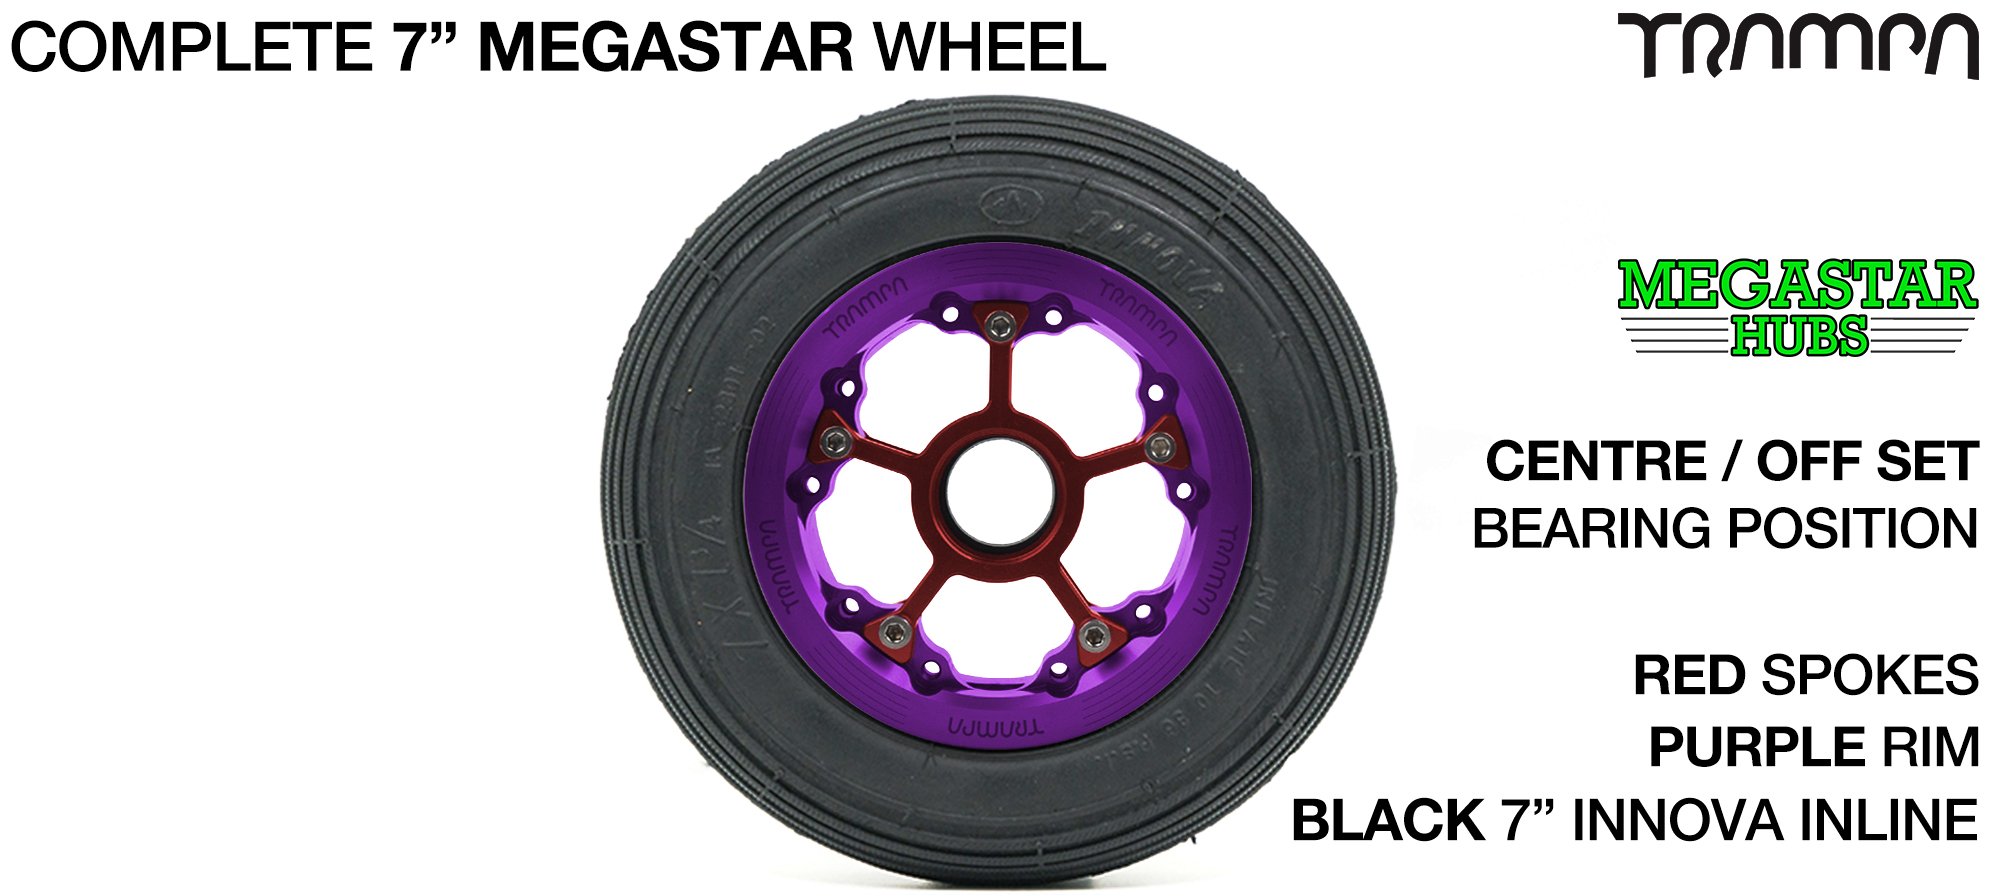 PURPLE MEGASTAR Rims with RED Spokes & 7 Inch Tyres